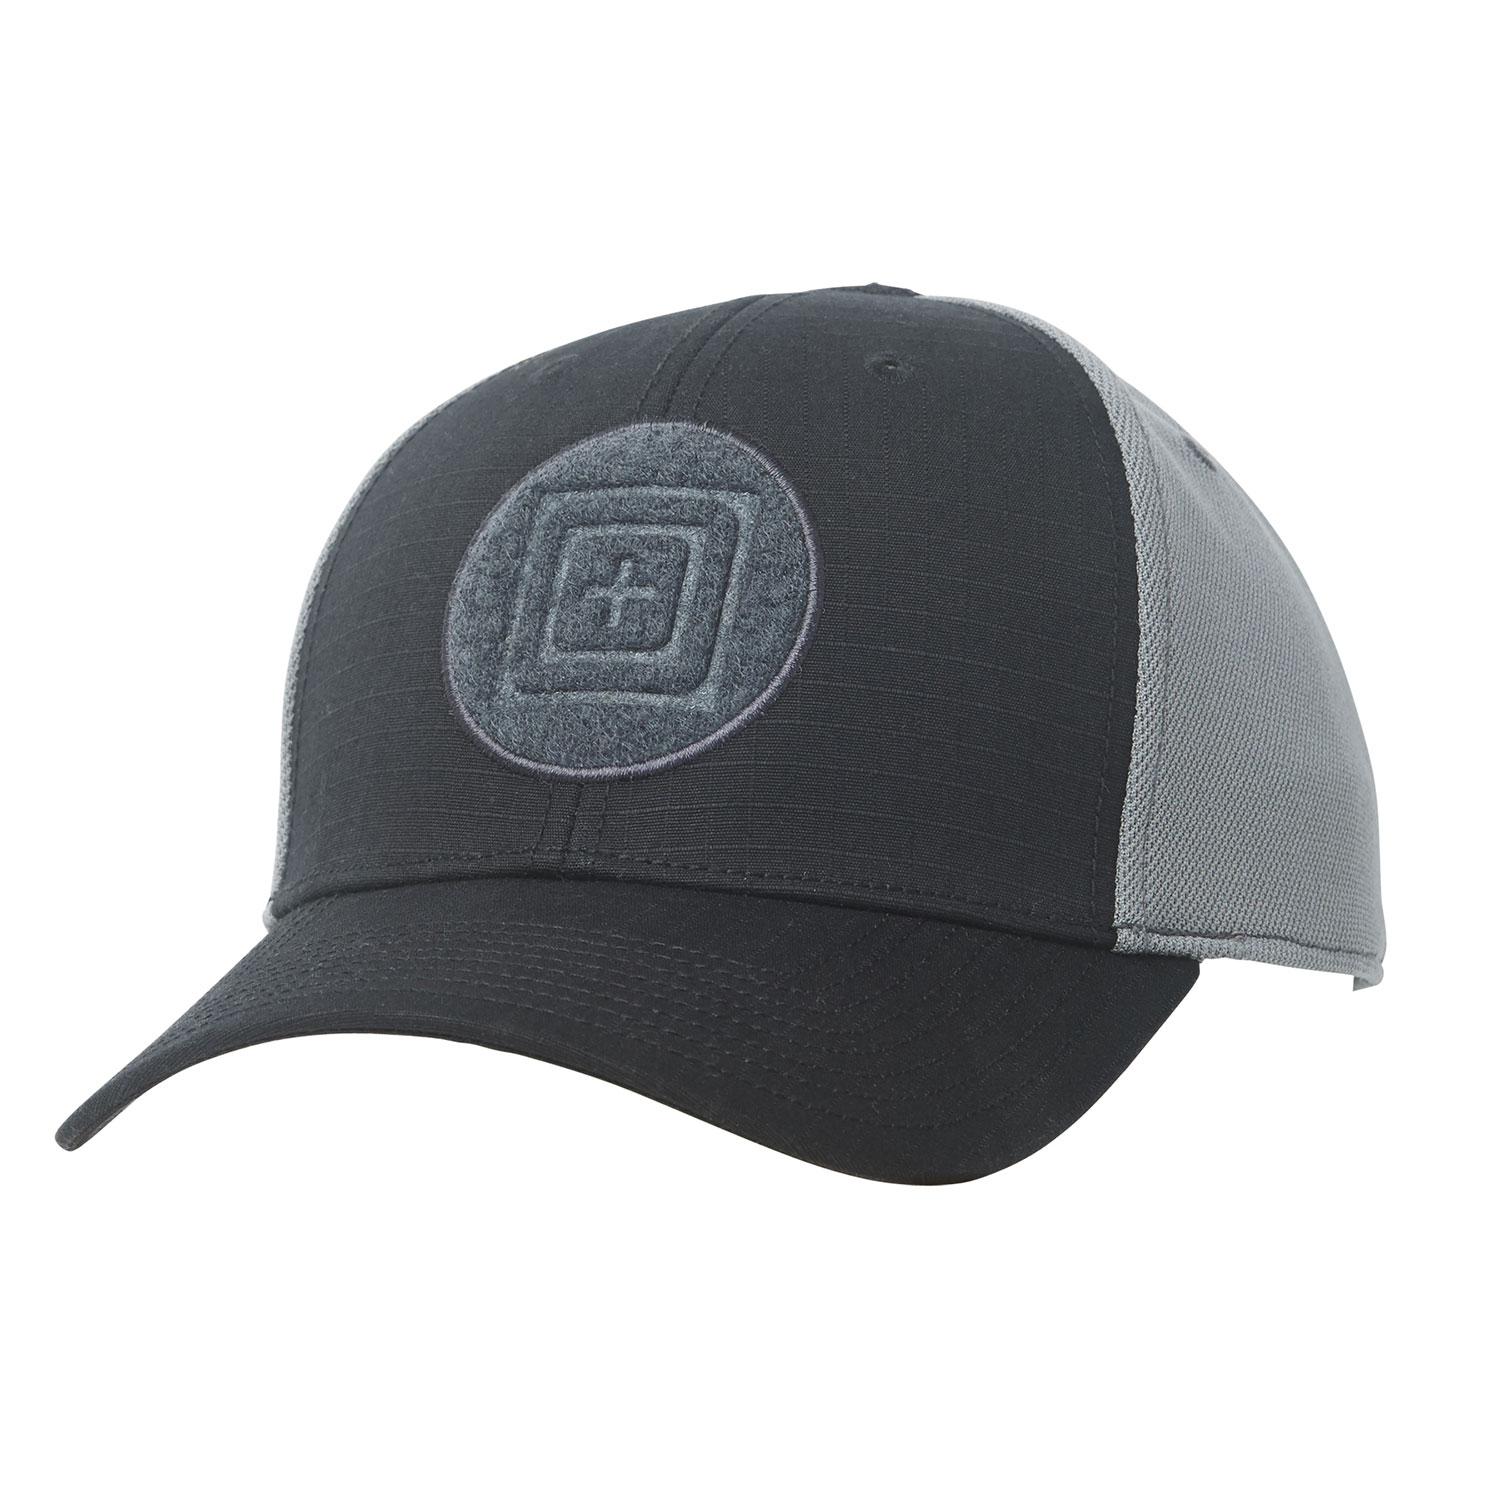 5.11 Tactical Downrange 2.0 Cap